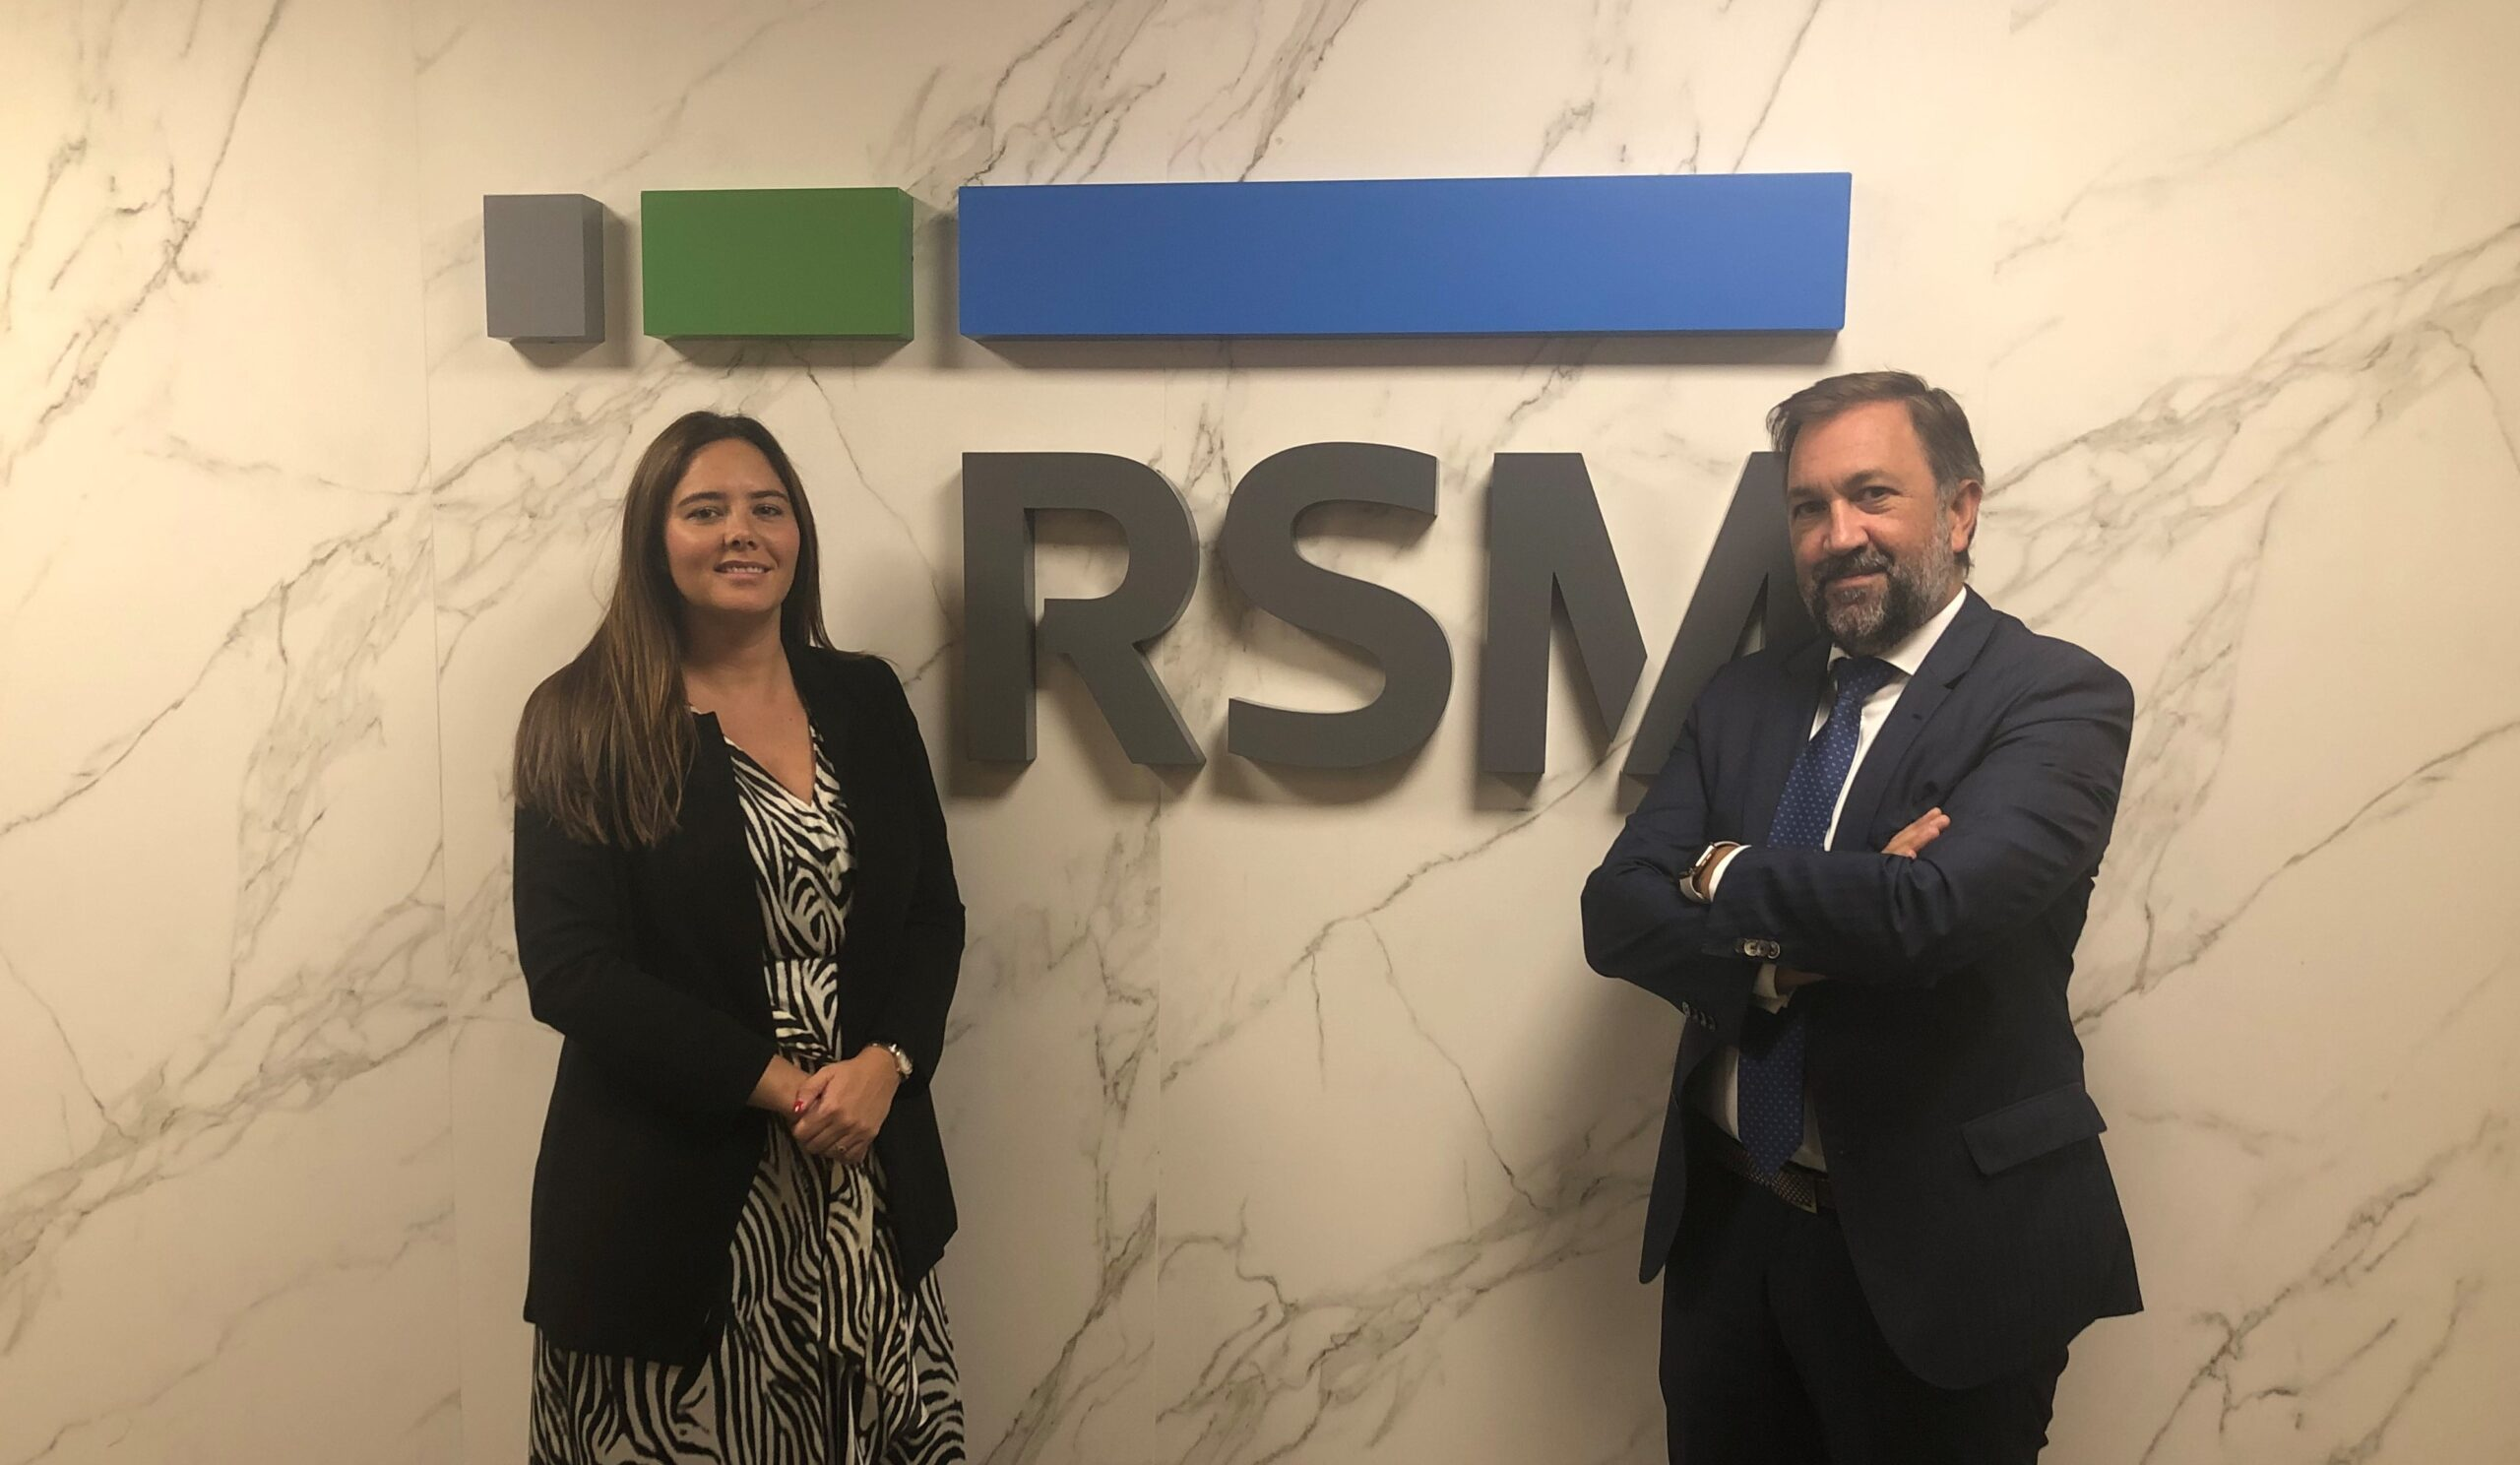 RSM Spain has promoted Patricia Gómez-Cambronero to Tax area partner